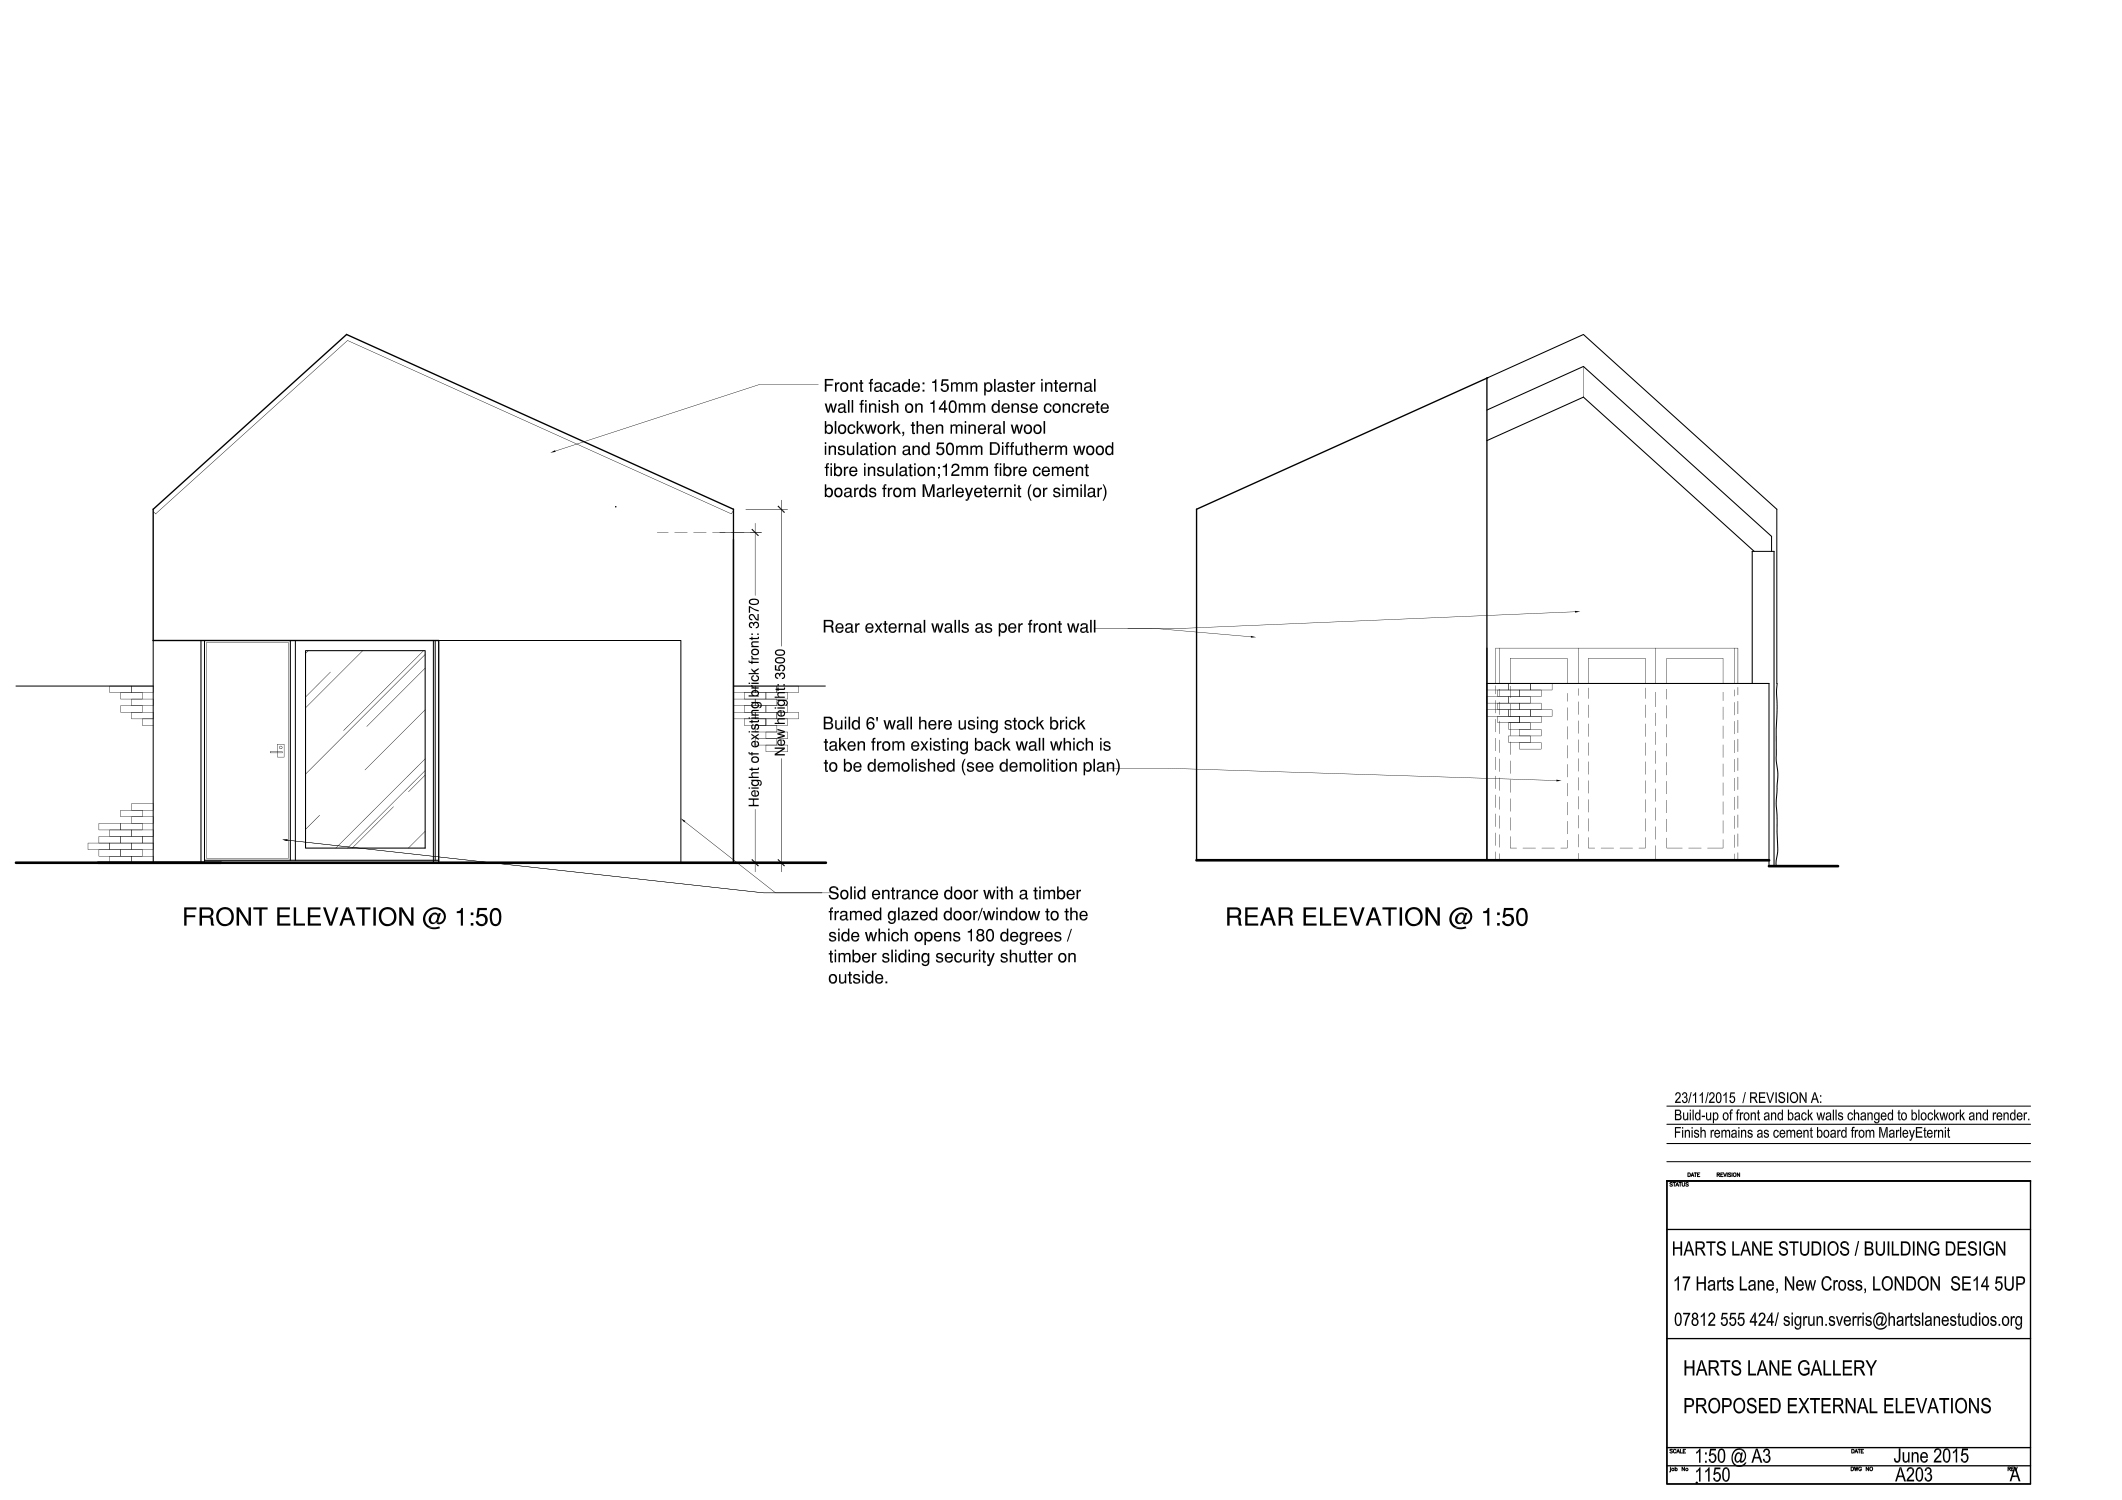 Hartslane Gallery A203 ext elevations.jpg